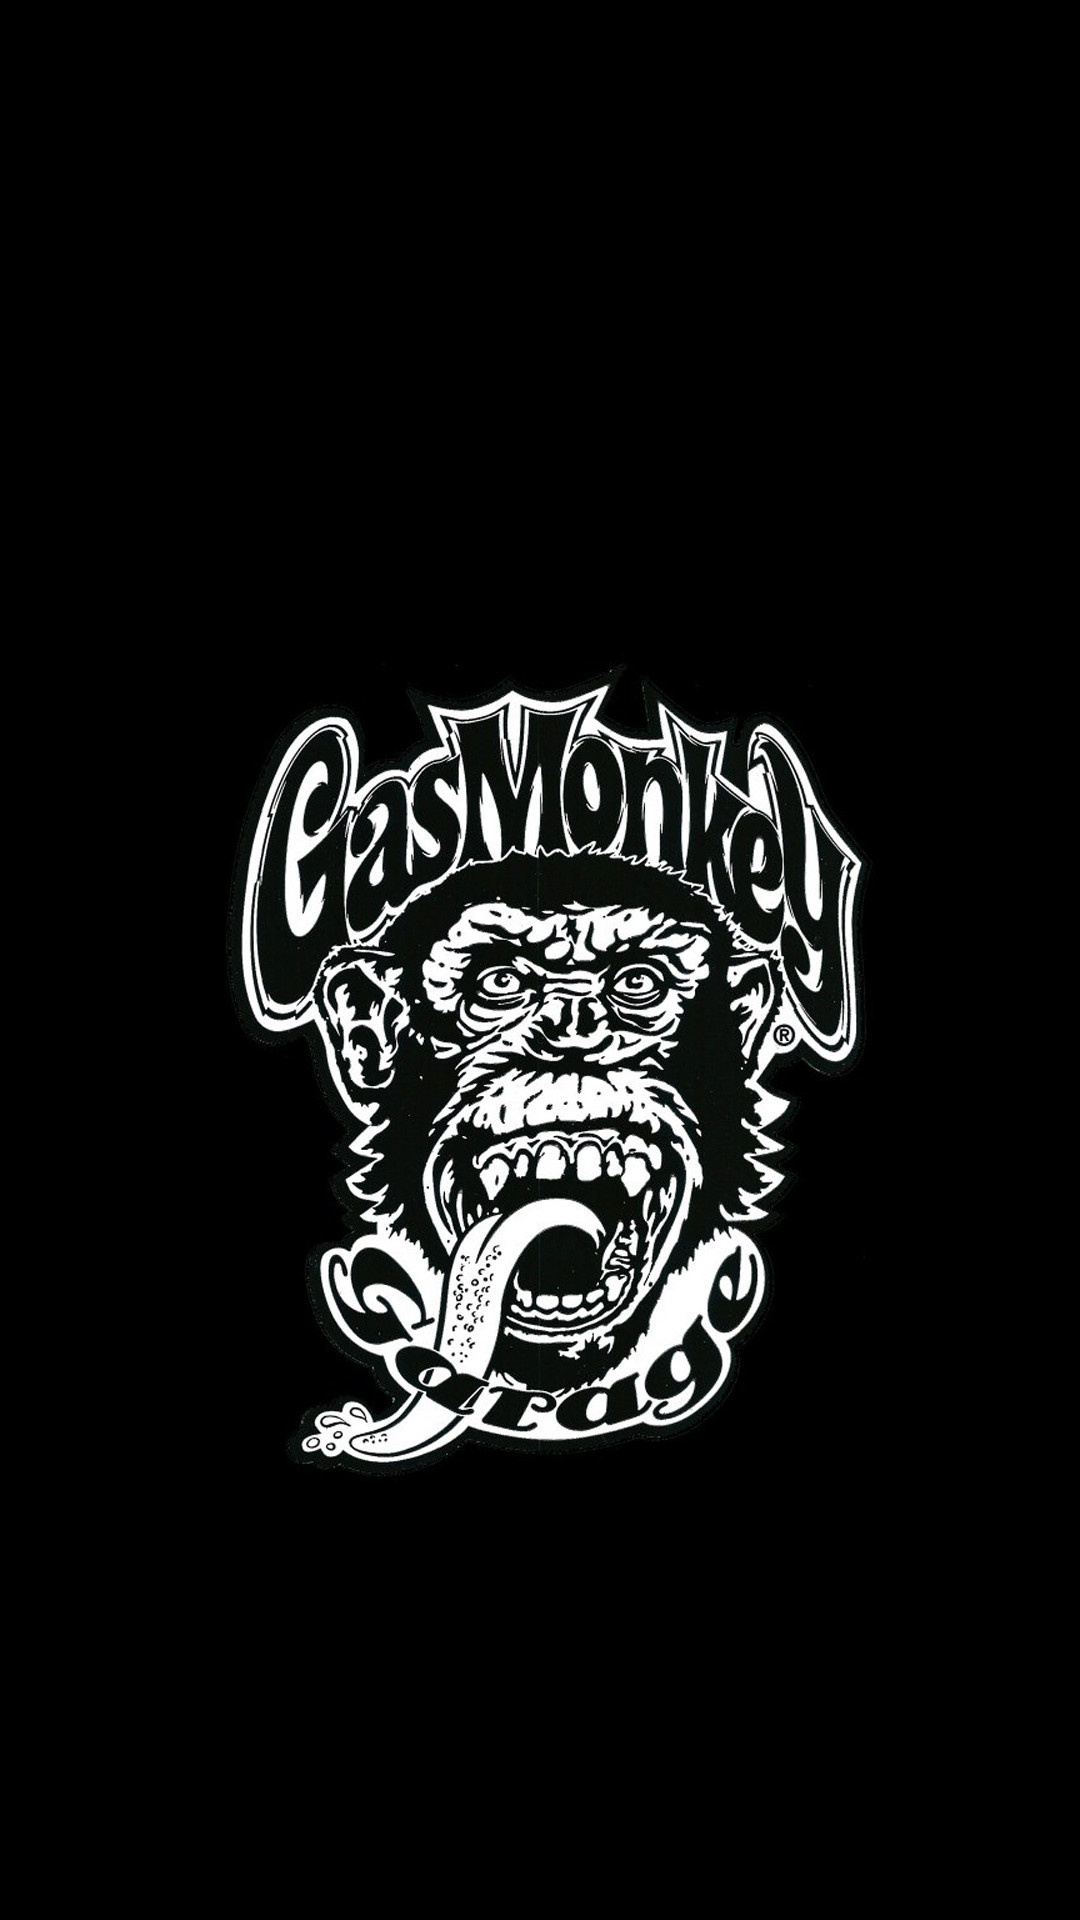 Best Looking Cars Wallpapers Gas Monkey Garage Wallpapers 55 Images